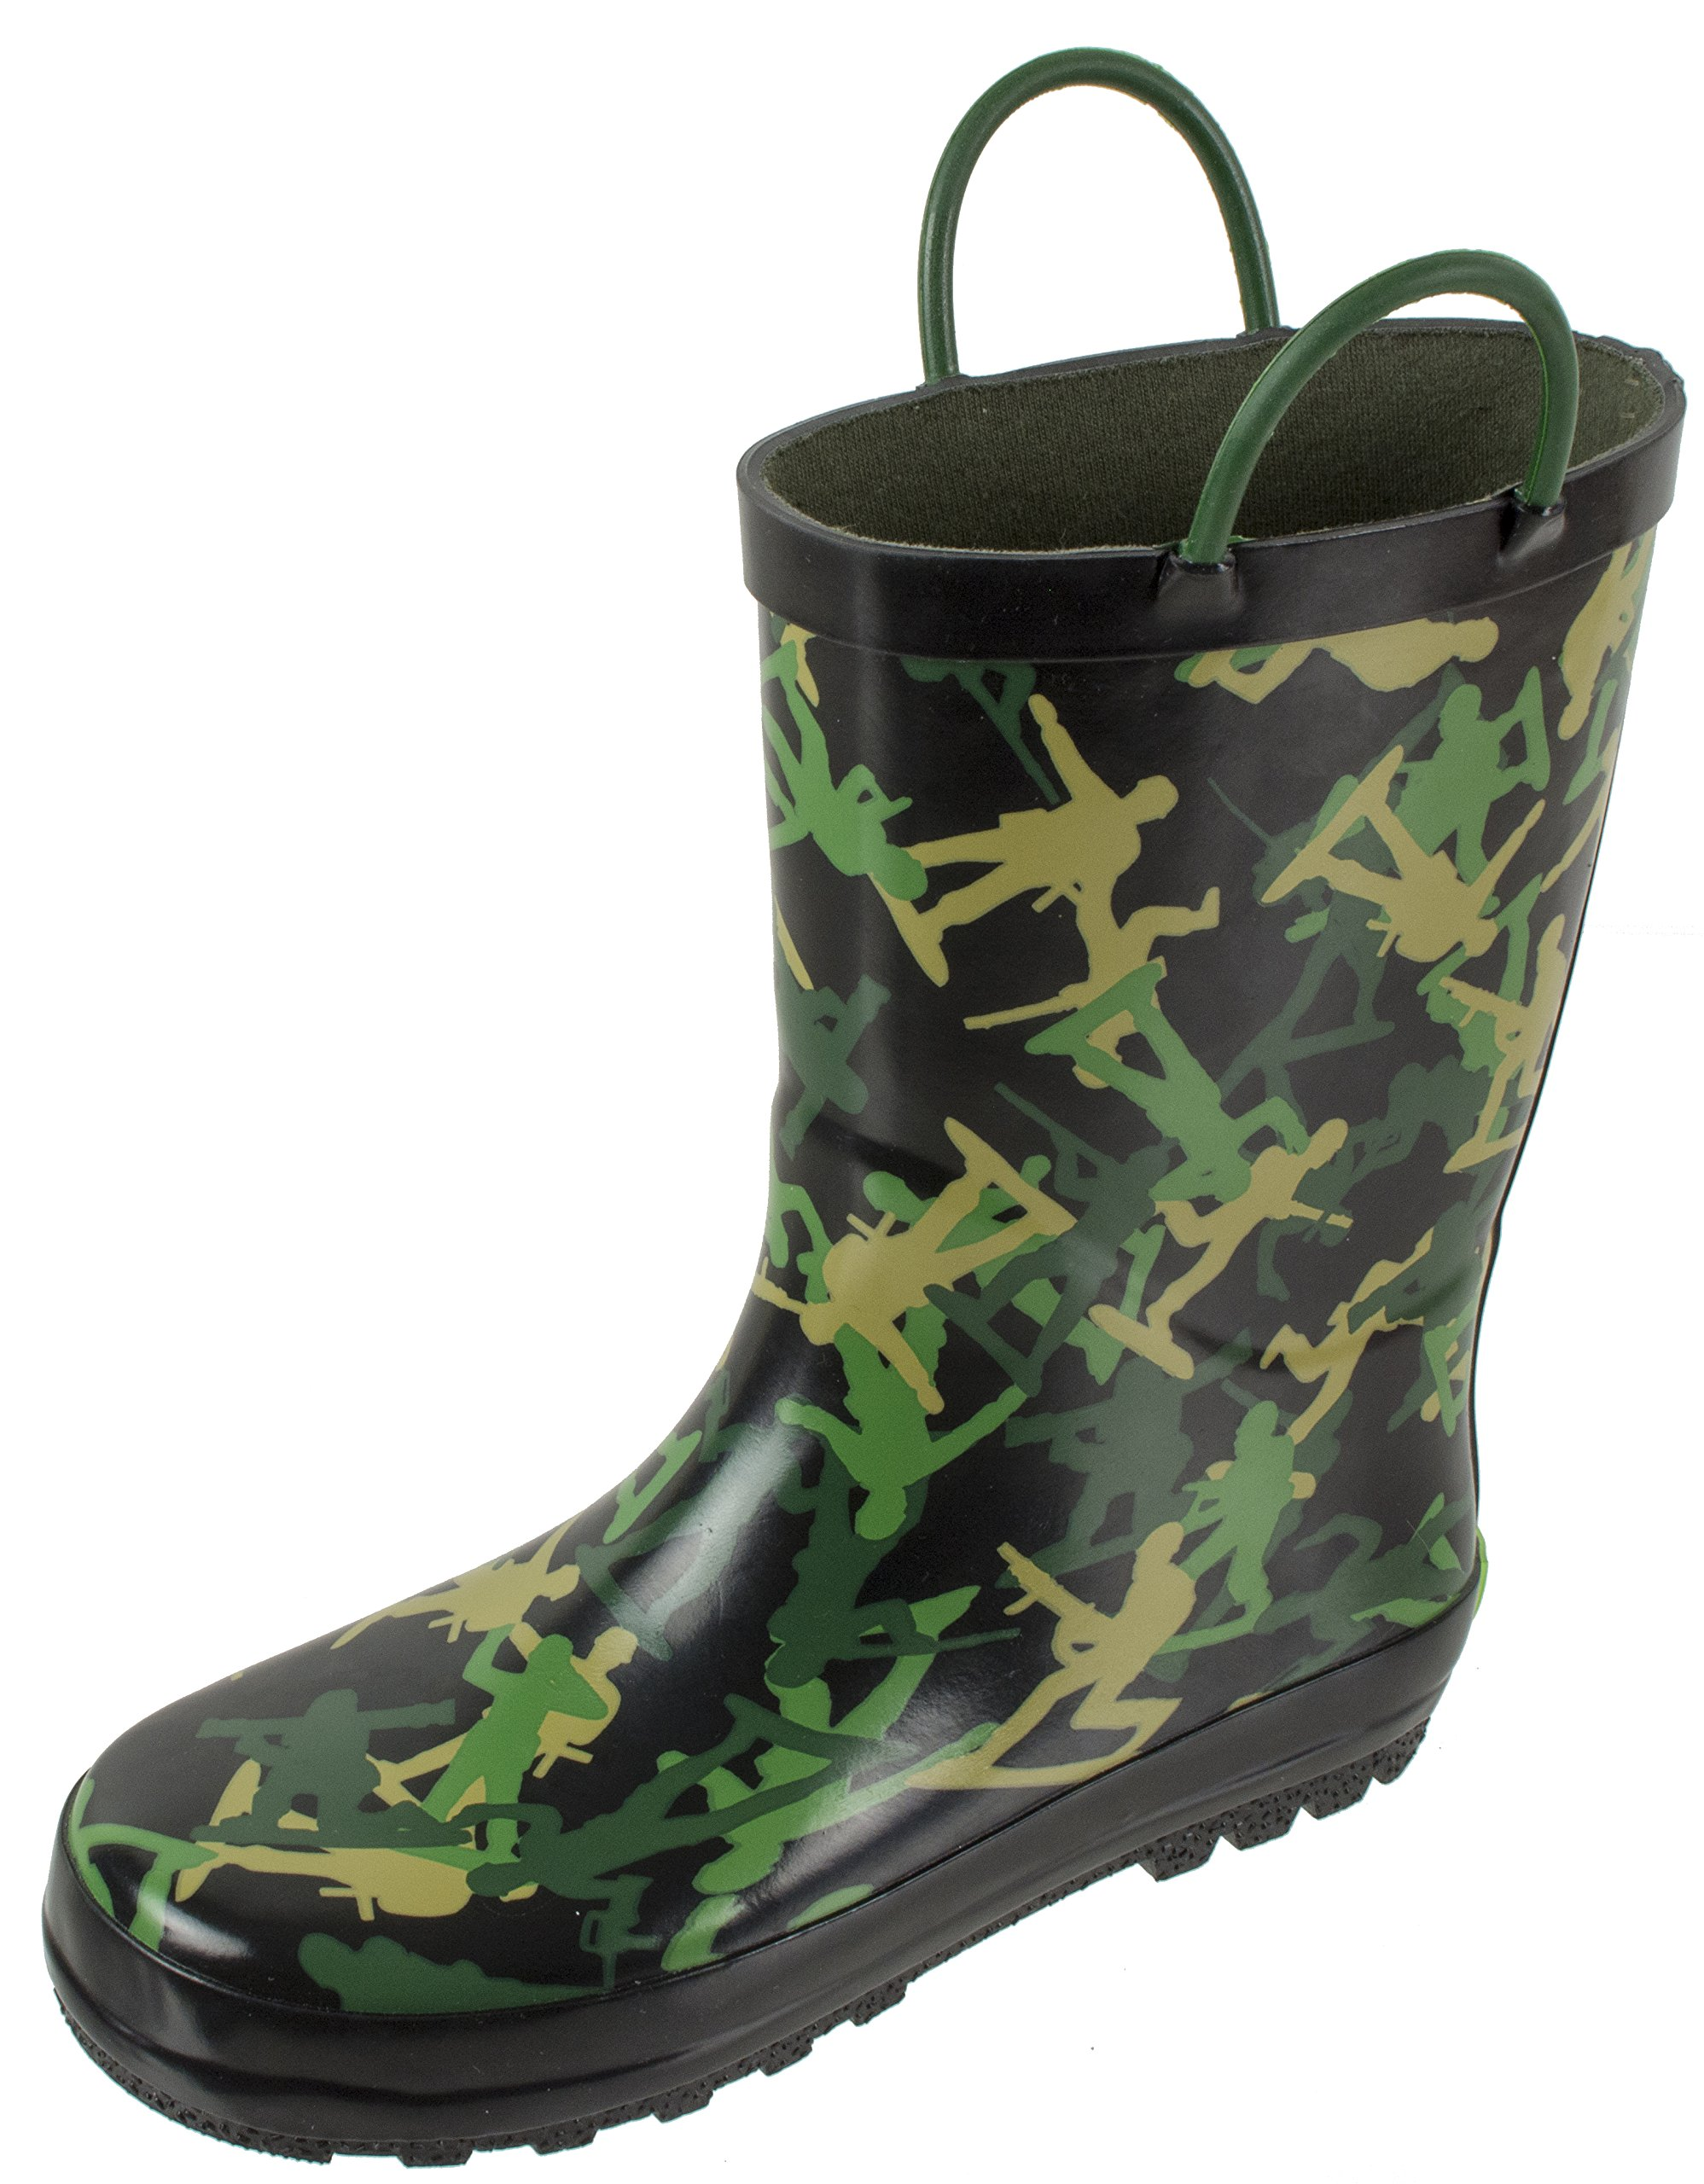 Rainbow Daze Kids Rain Boots Waterproof with Easy-on Handles for Kids, 100% Rubber, Ages 2 to 9, Army Soldier Camo Print, (13/1, Black Camo)